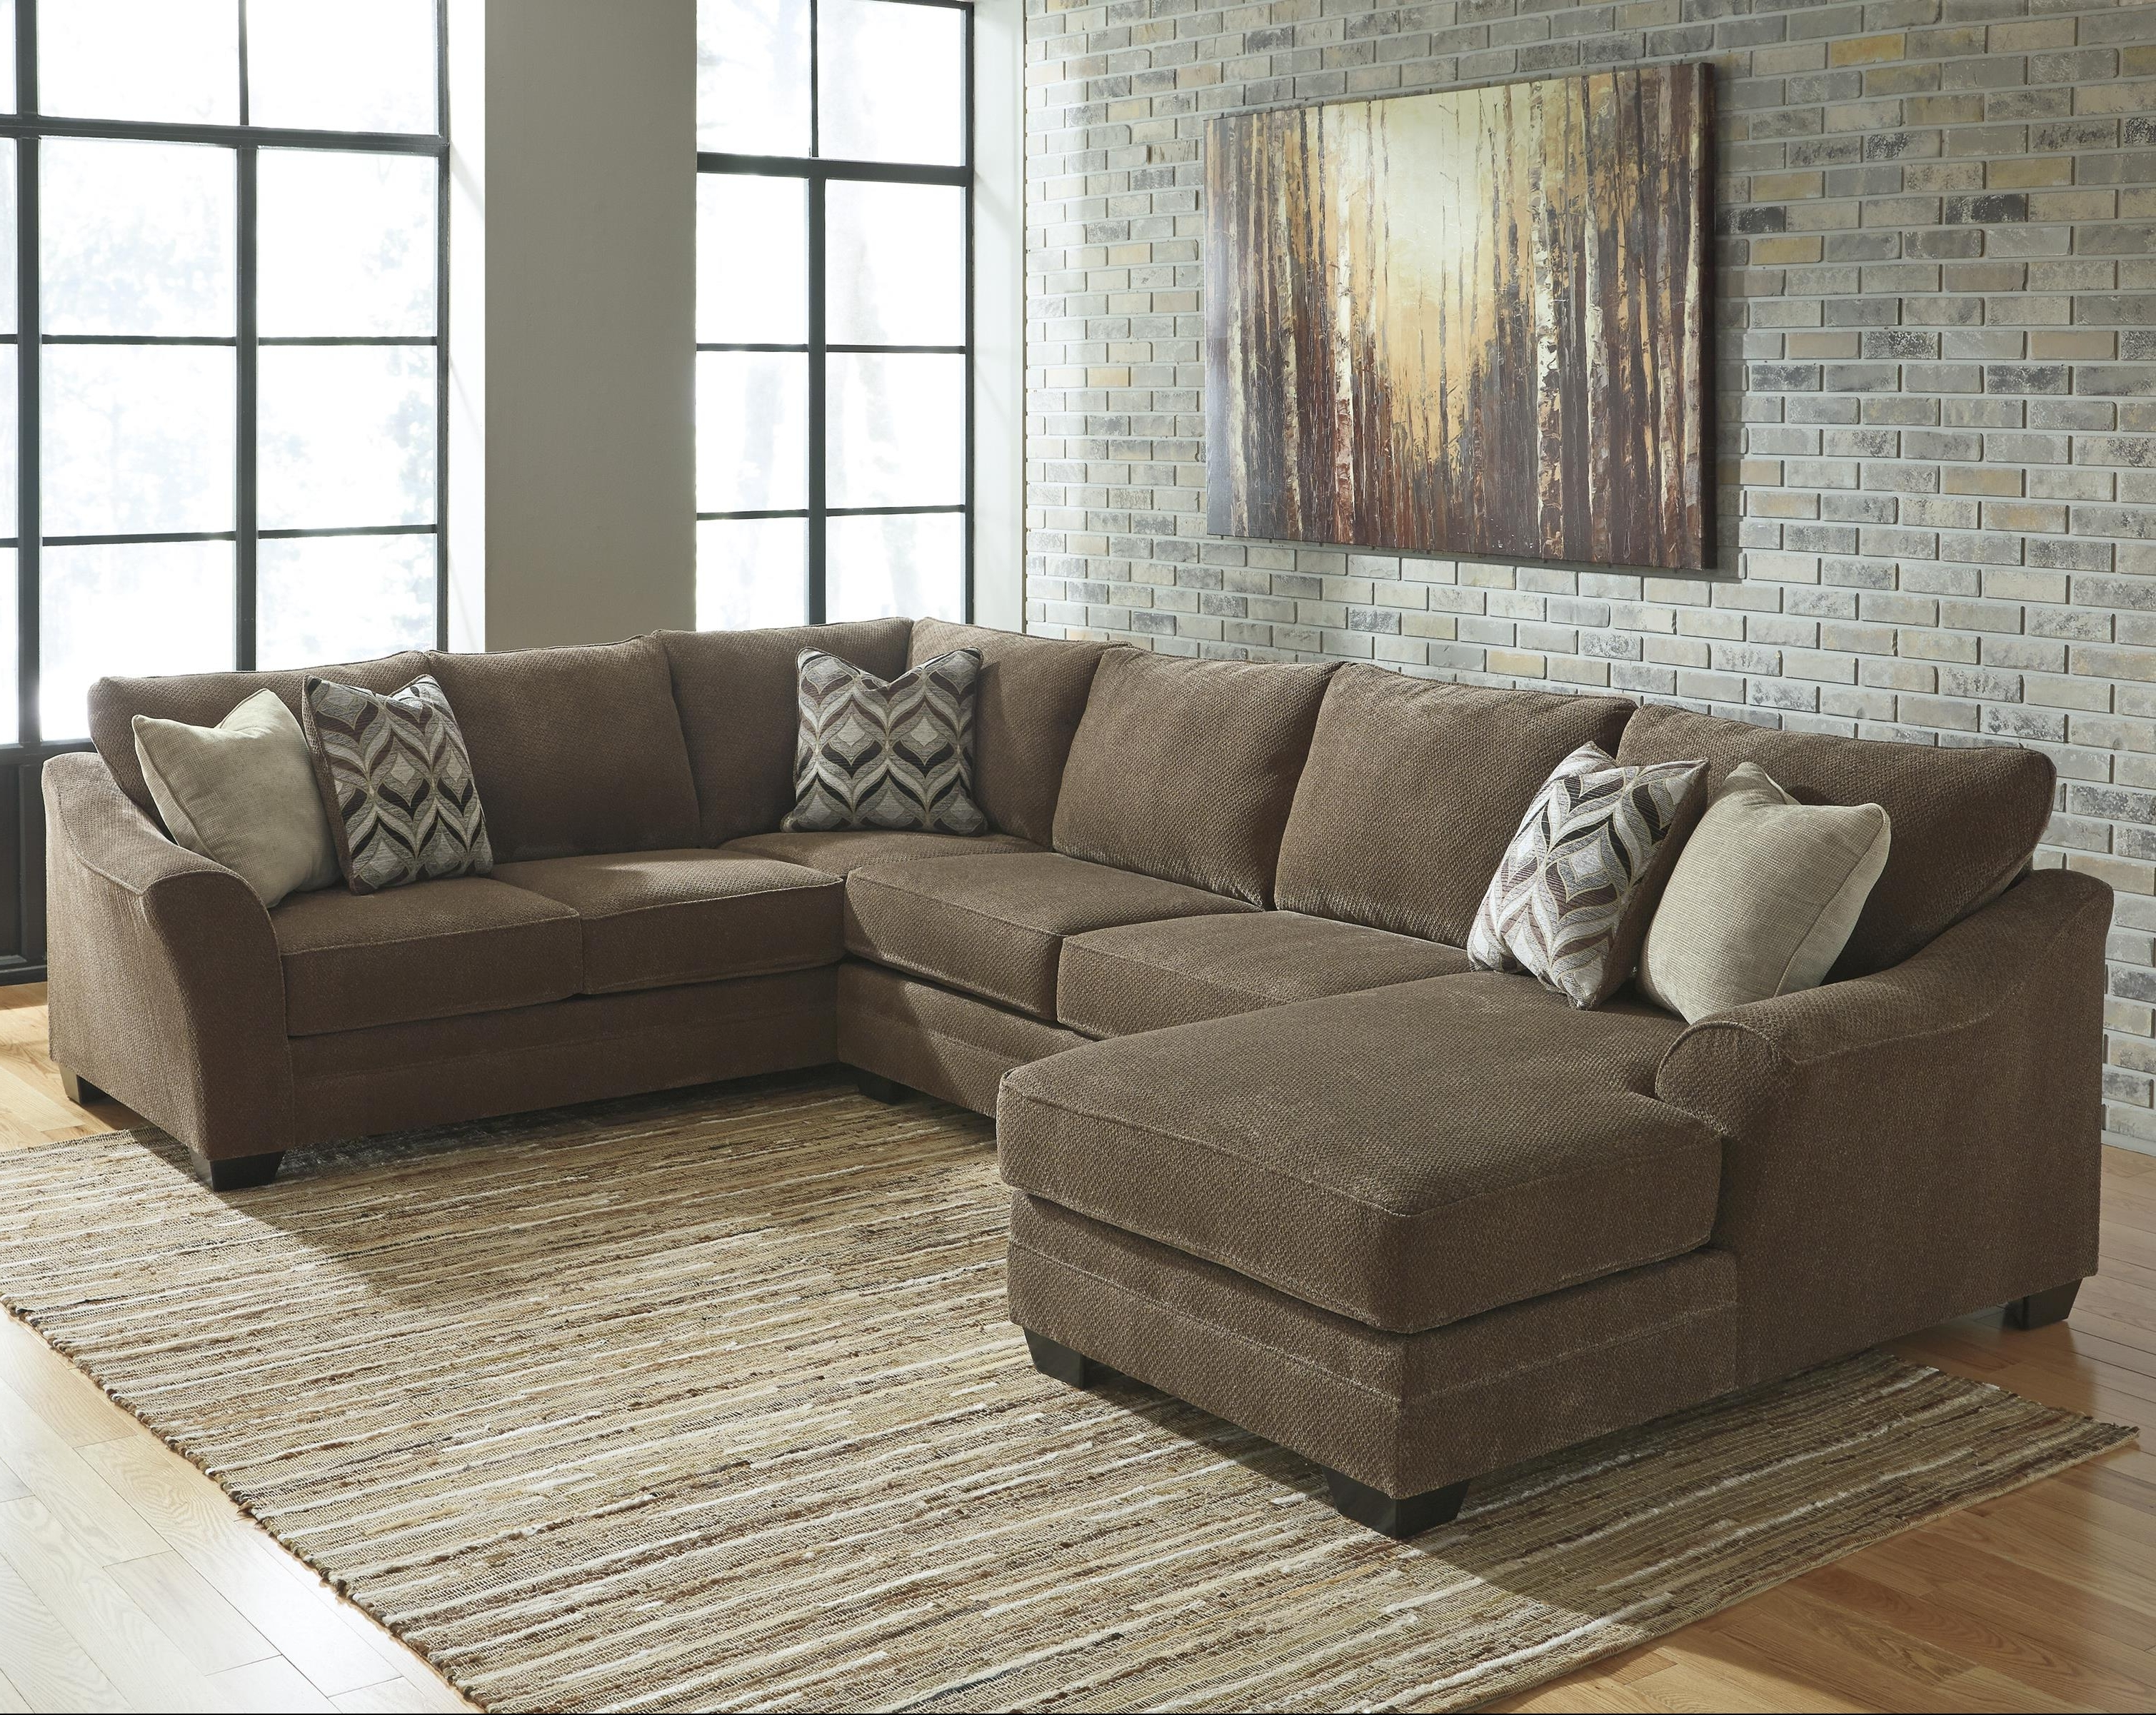 the ash danely enlarge to sofa product furniture with click ashley classy home sectional polyester chaise dusk